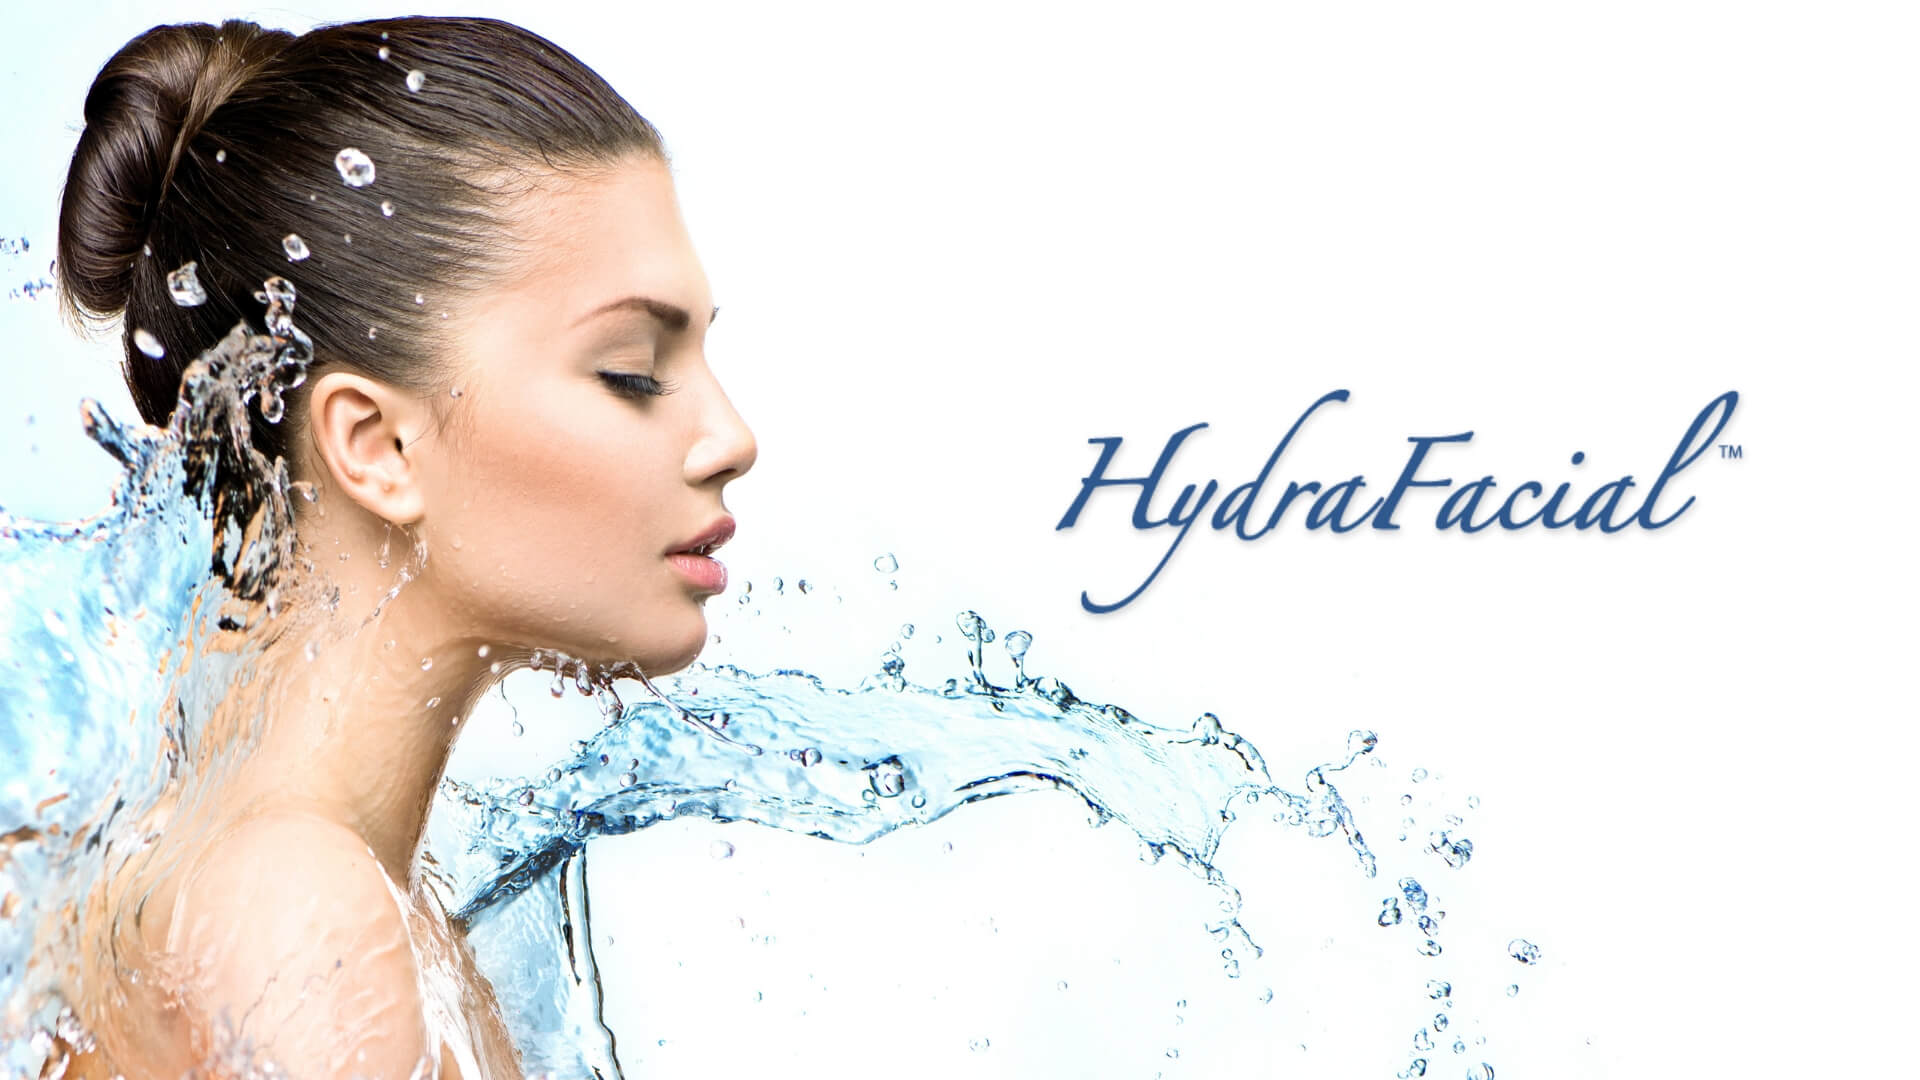 vein-and-cosmetics-hydra-facial